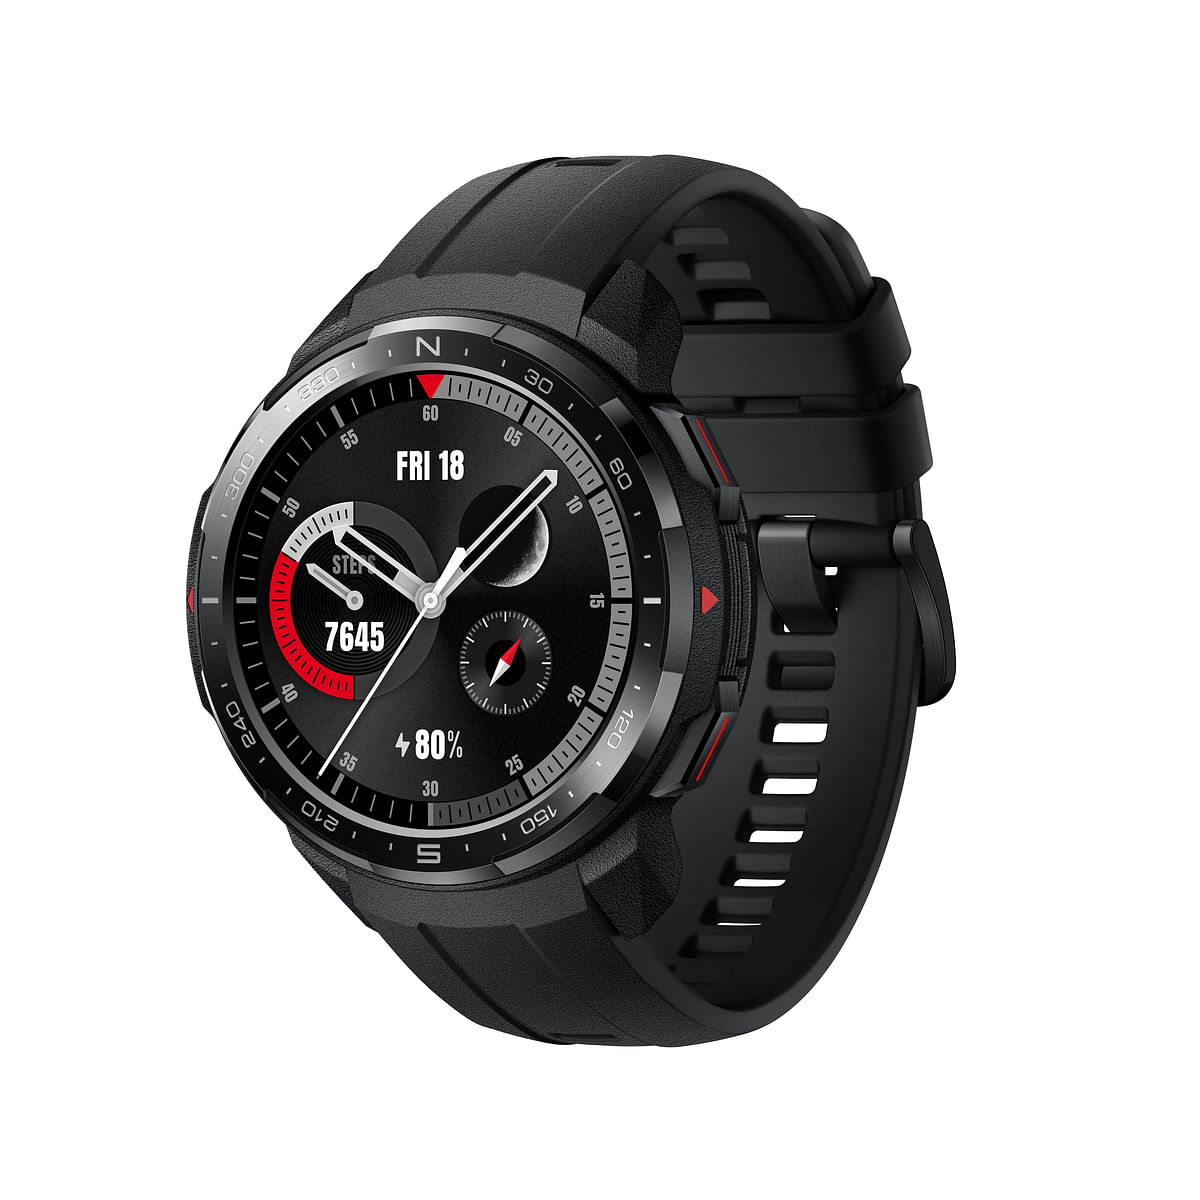 The Honor Watch GS Pro is equipped with SpO2 monitor.